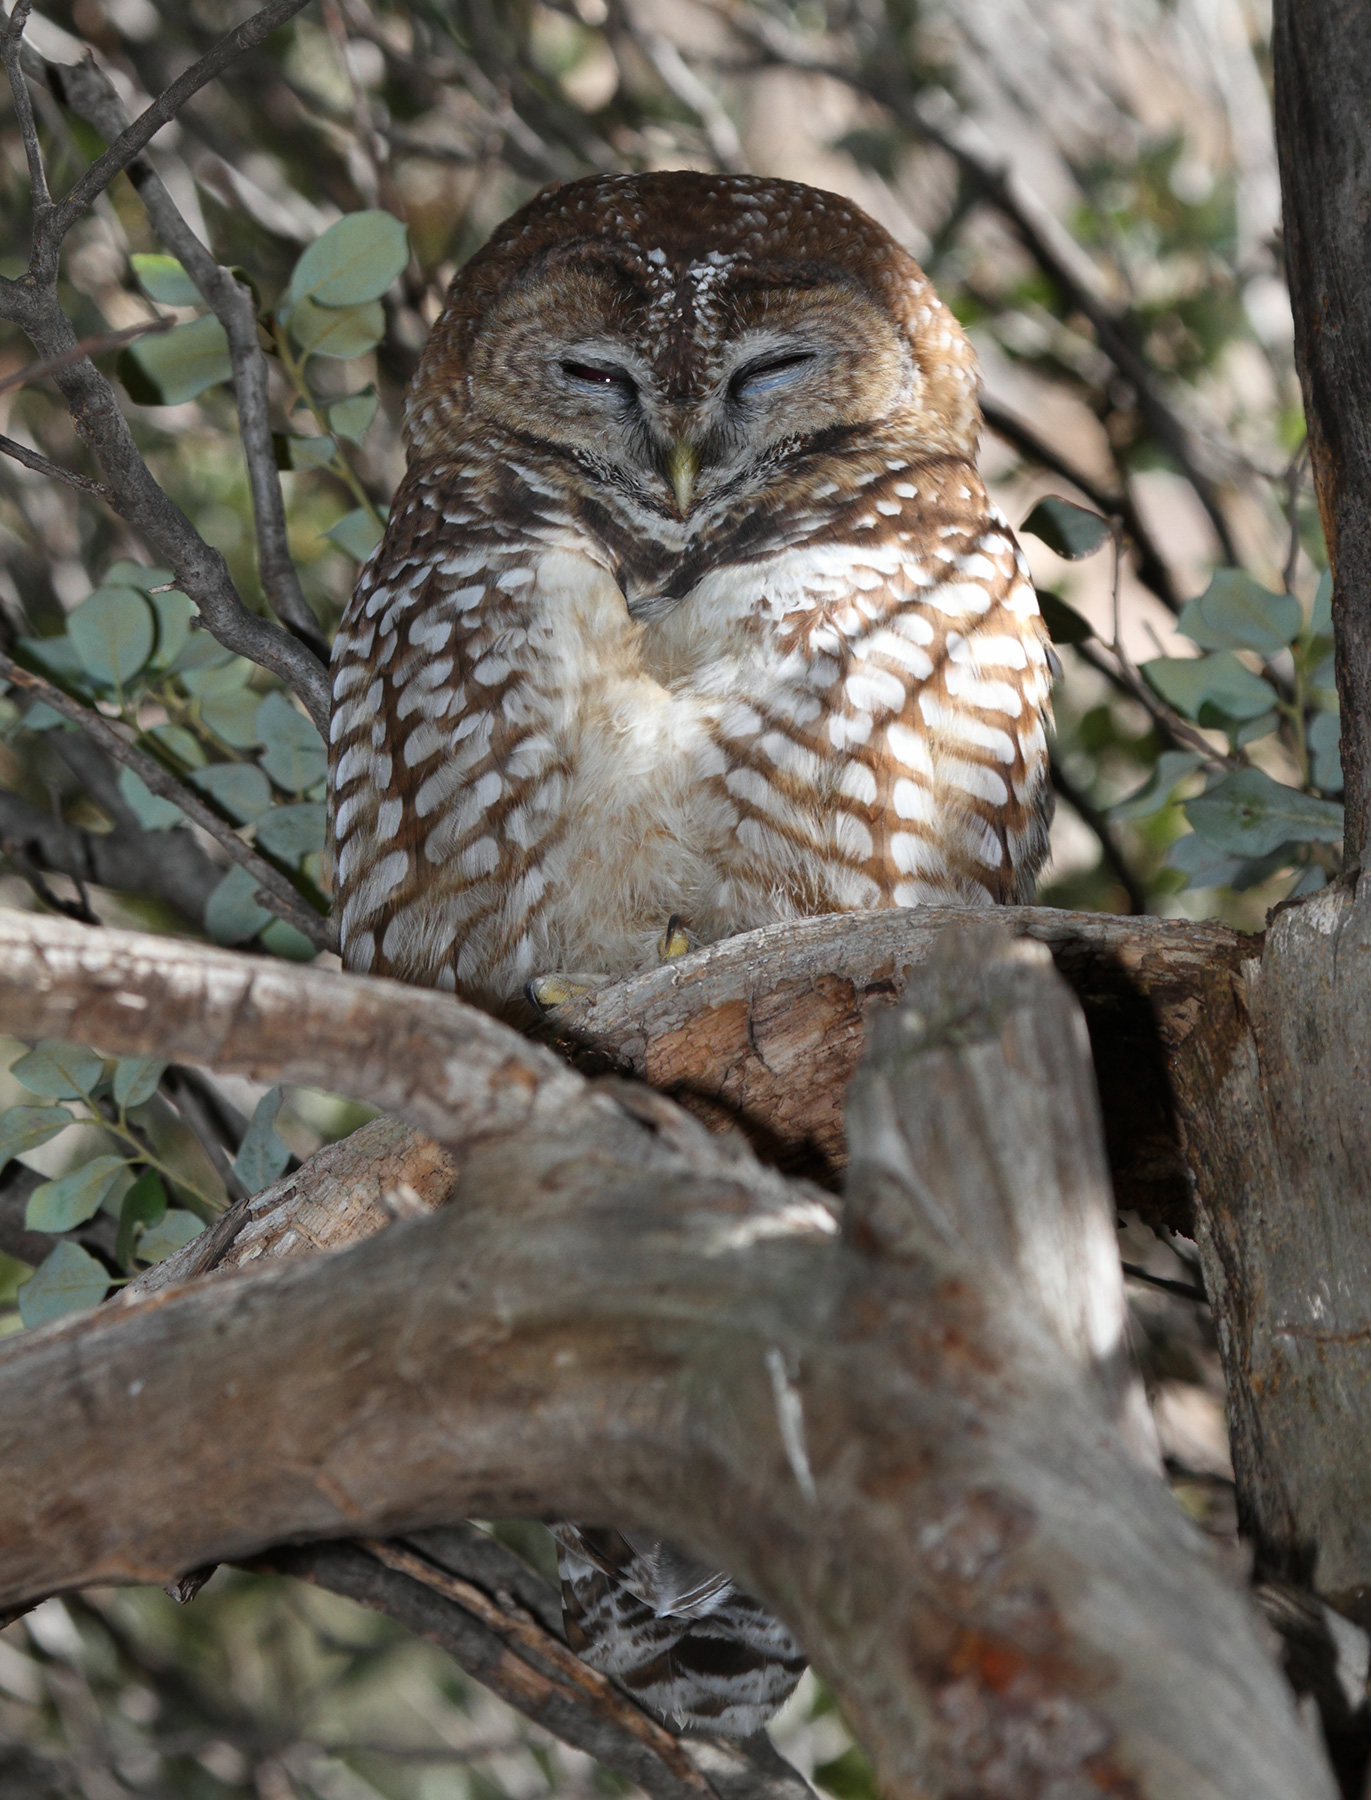 Mexican spotted owl sleeping in a tree